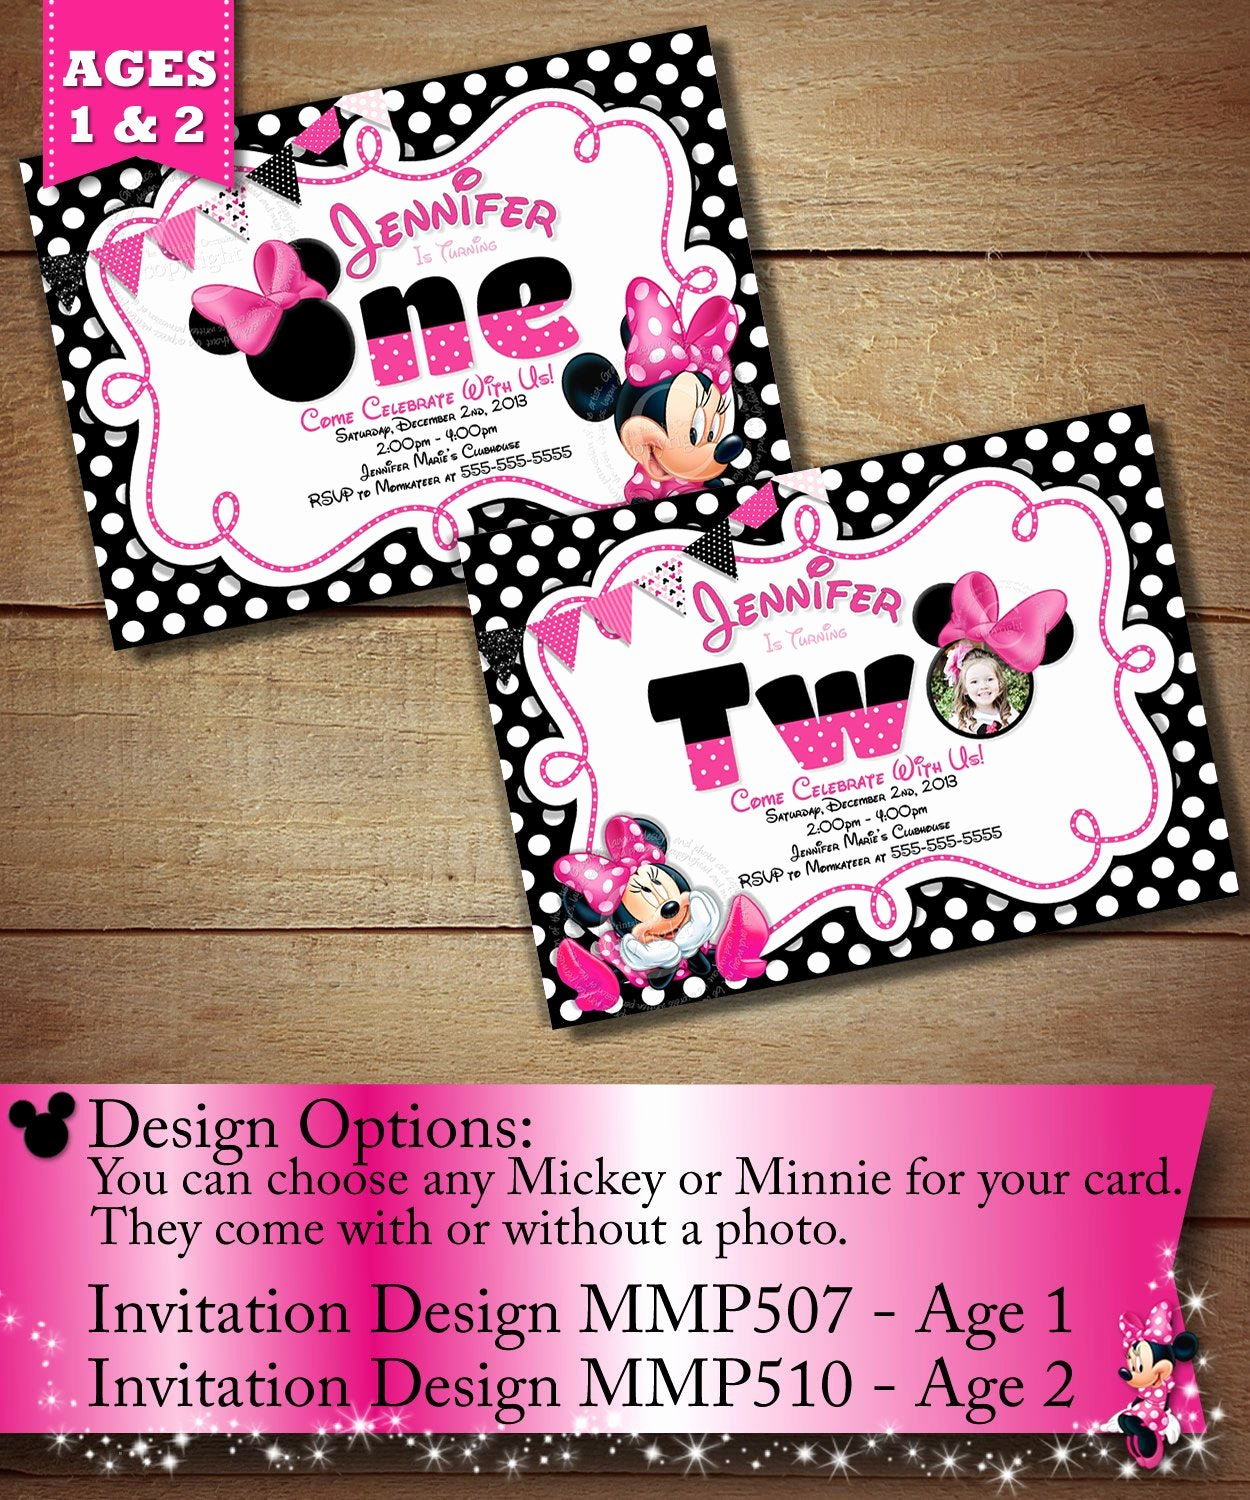 Minnie Mouse Party Invitations Best Of Minnie Mouse First Birthday Invitation Minnie Mouse Second